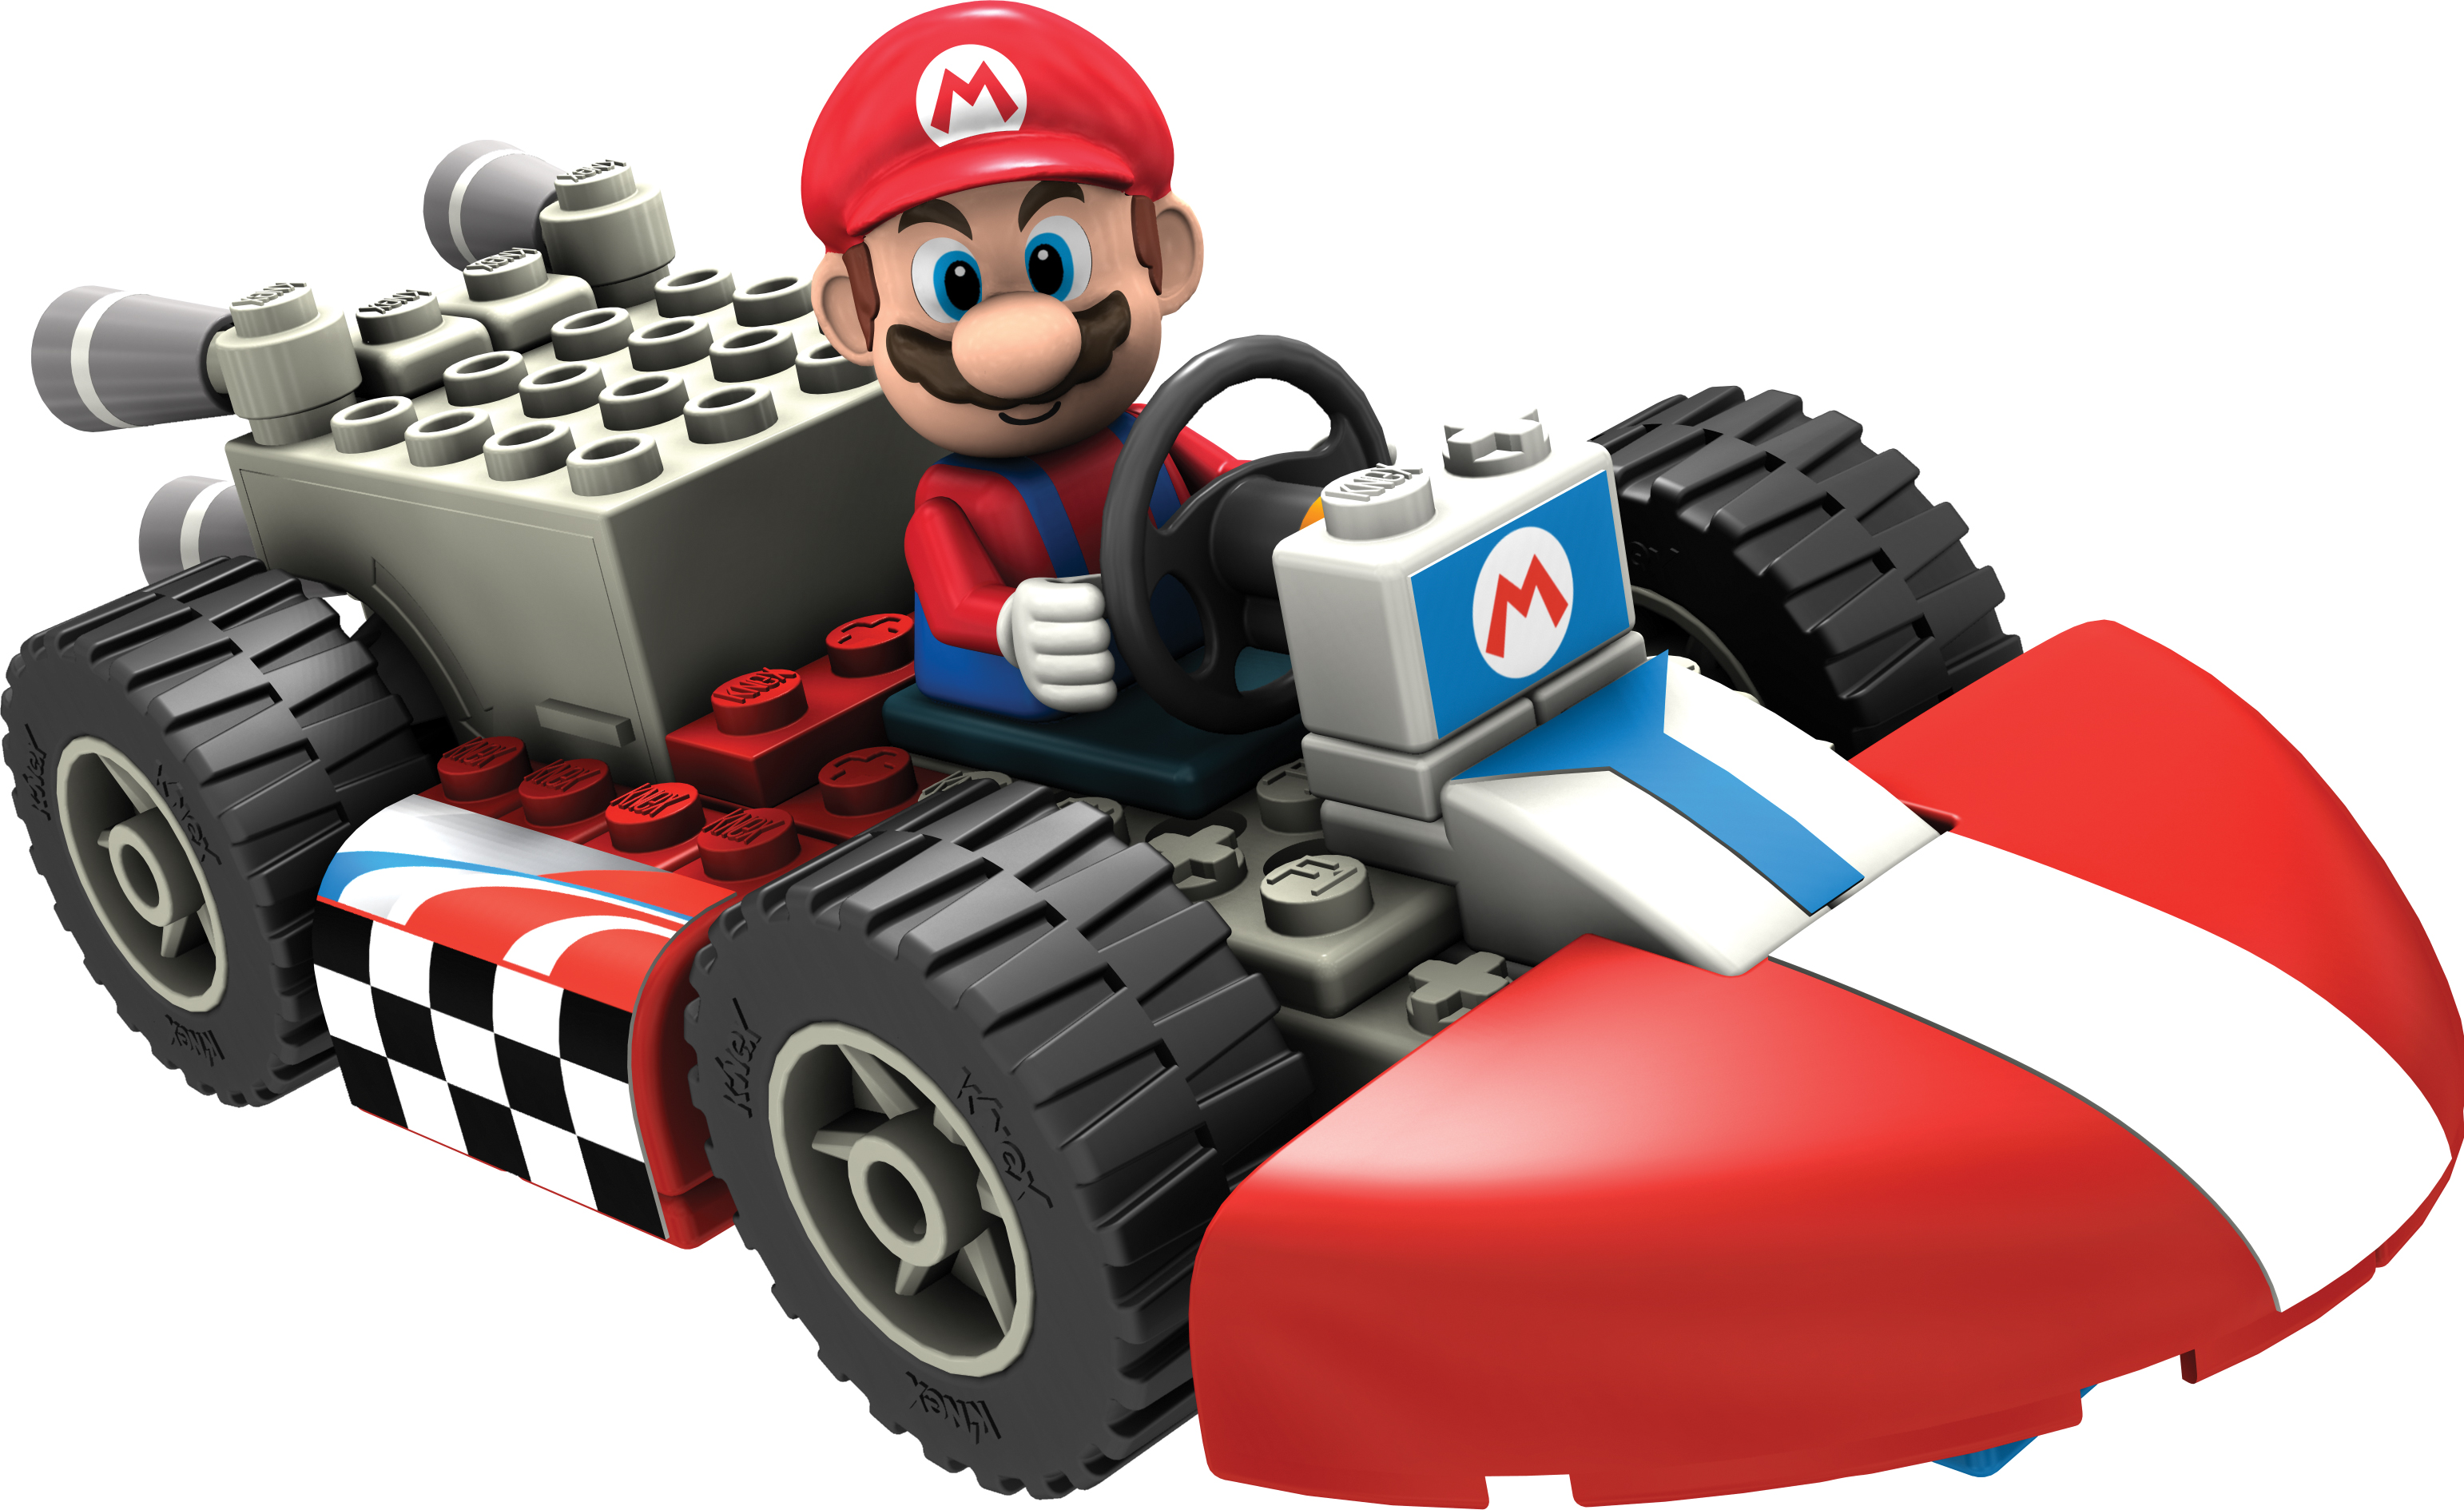 k nex mario kart wii building sets review dustinnikki mommy of three. Black Bedroom Furniture Sets. Home Design Ideas